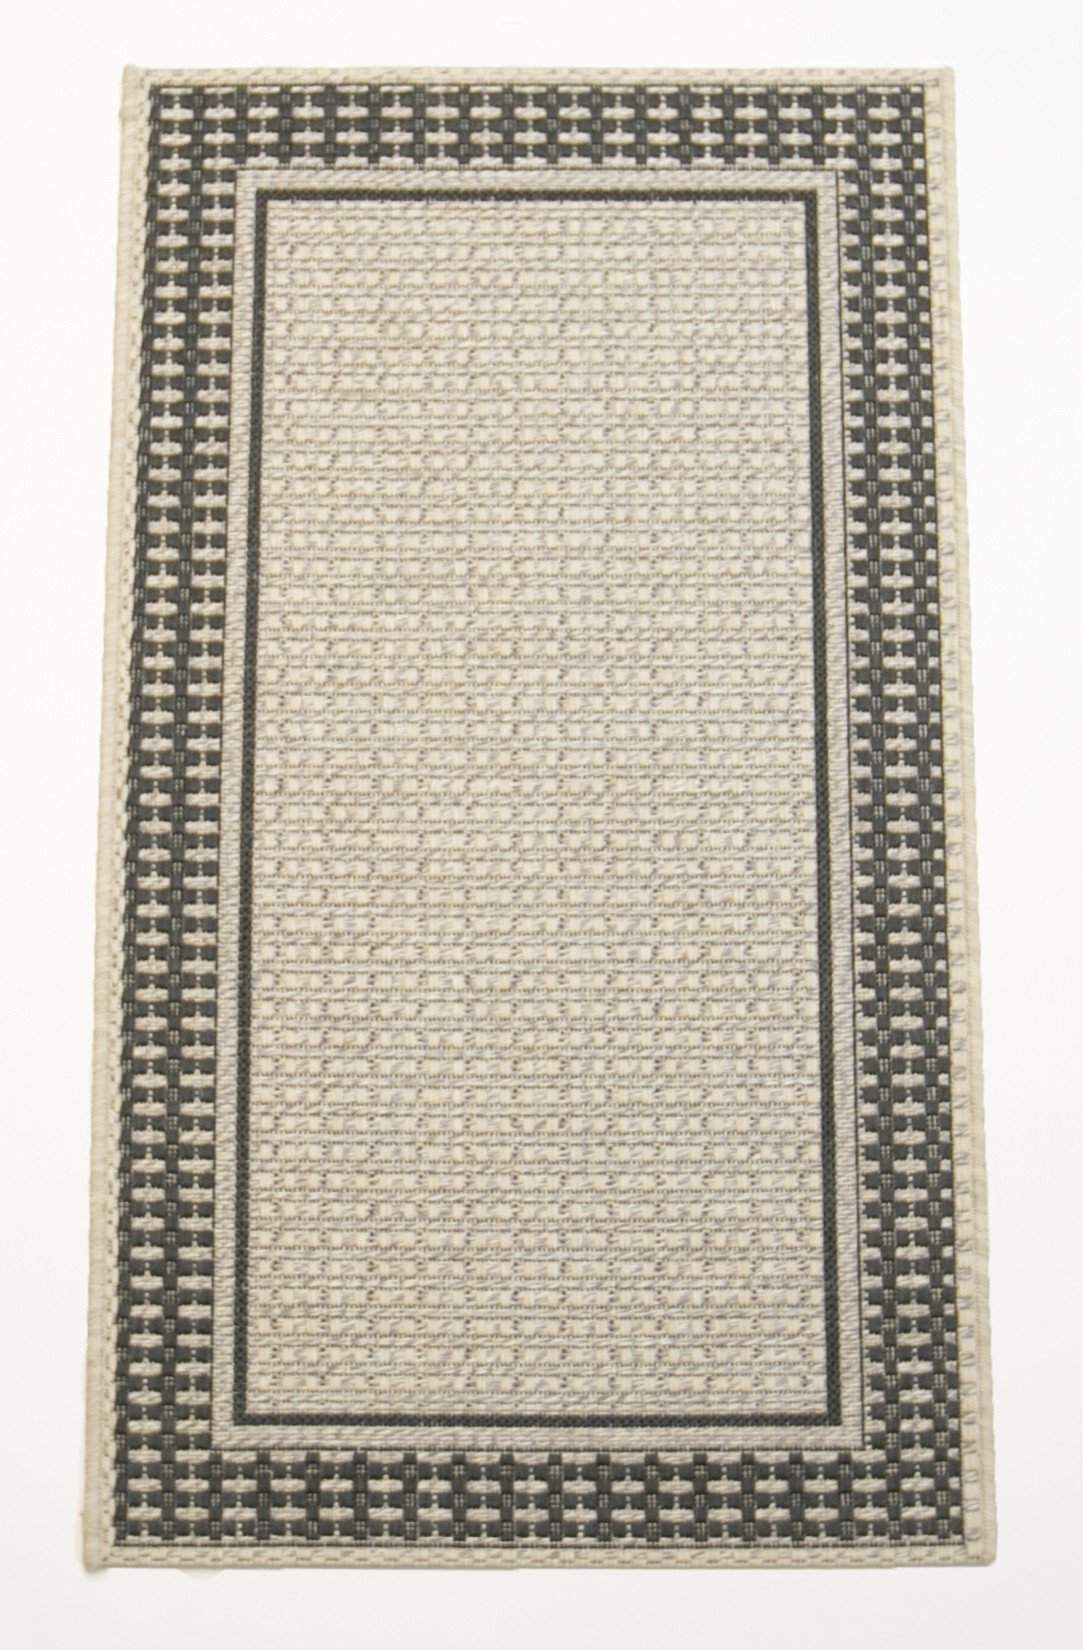 2' x 4' Tides Black & Grey Outdoor Small Area Runner